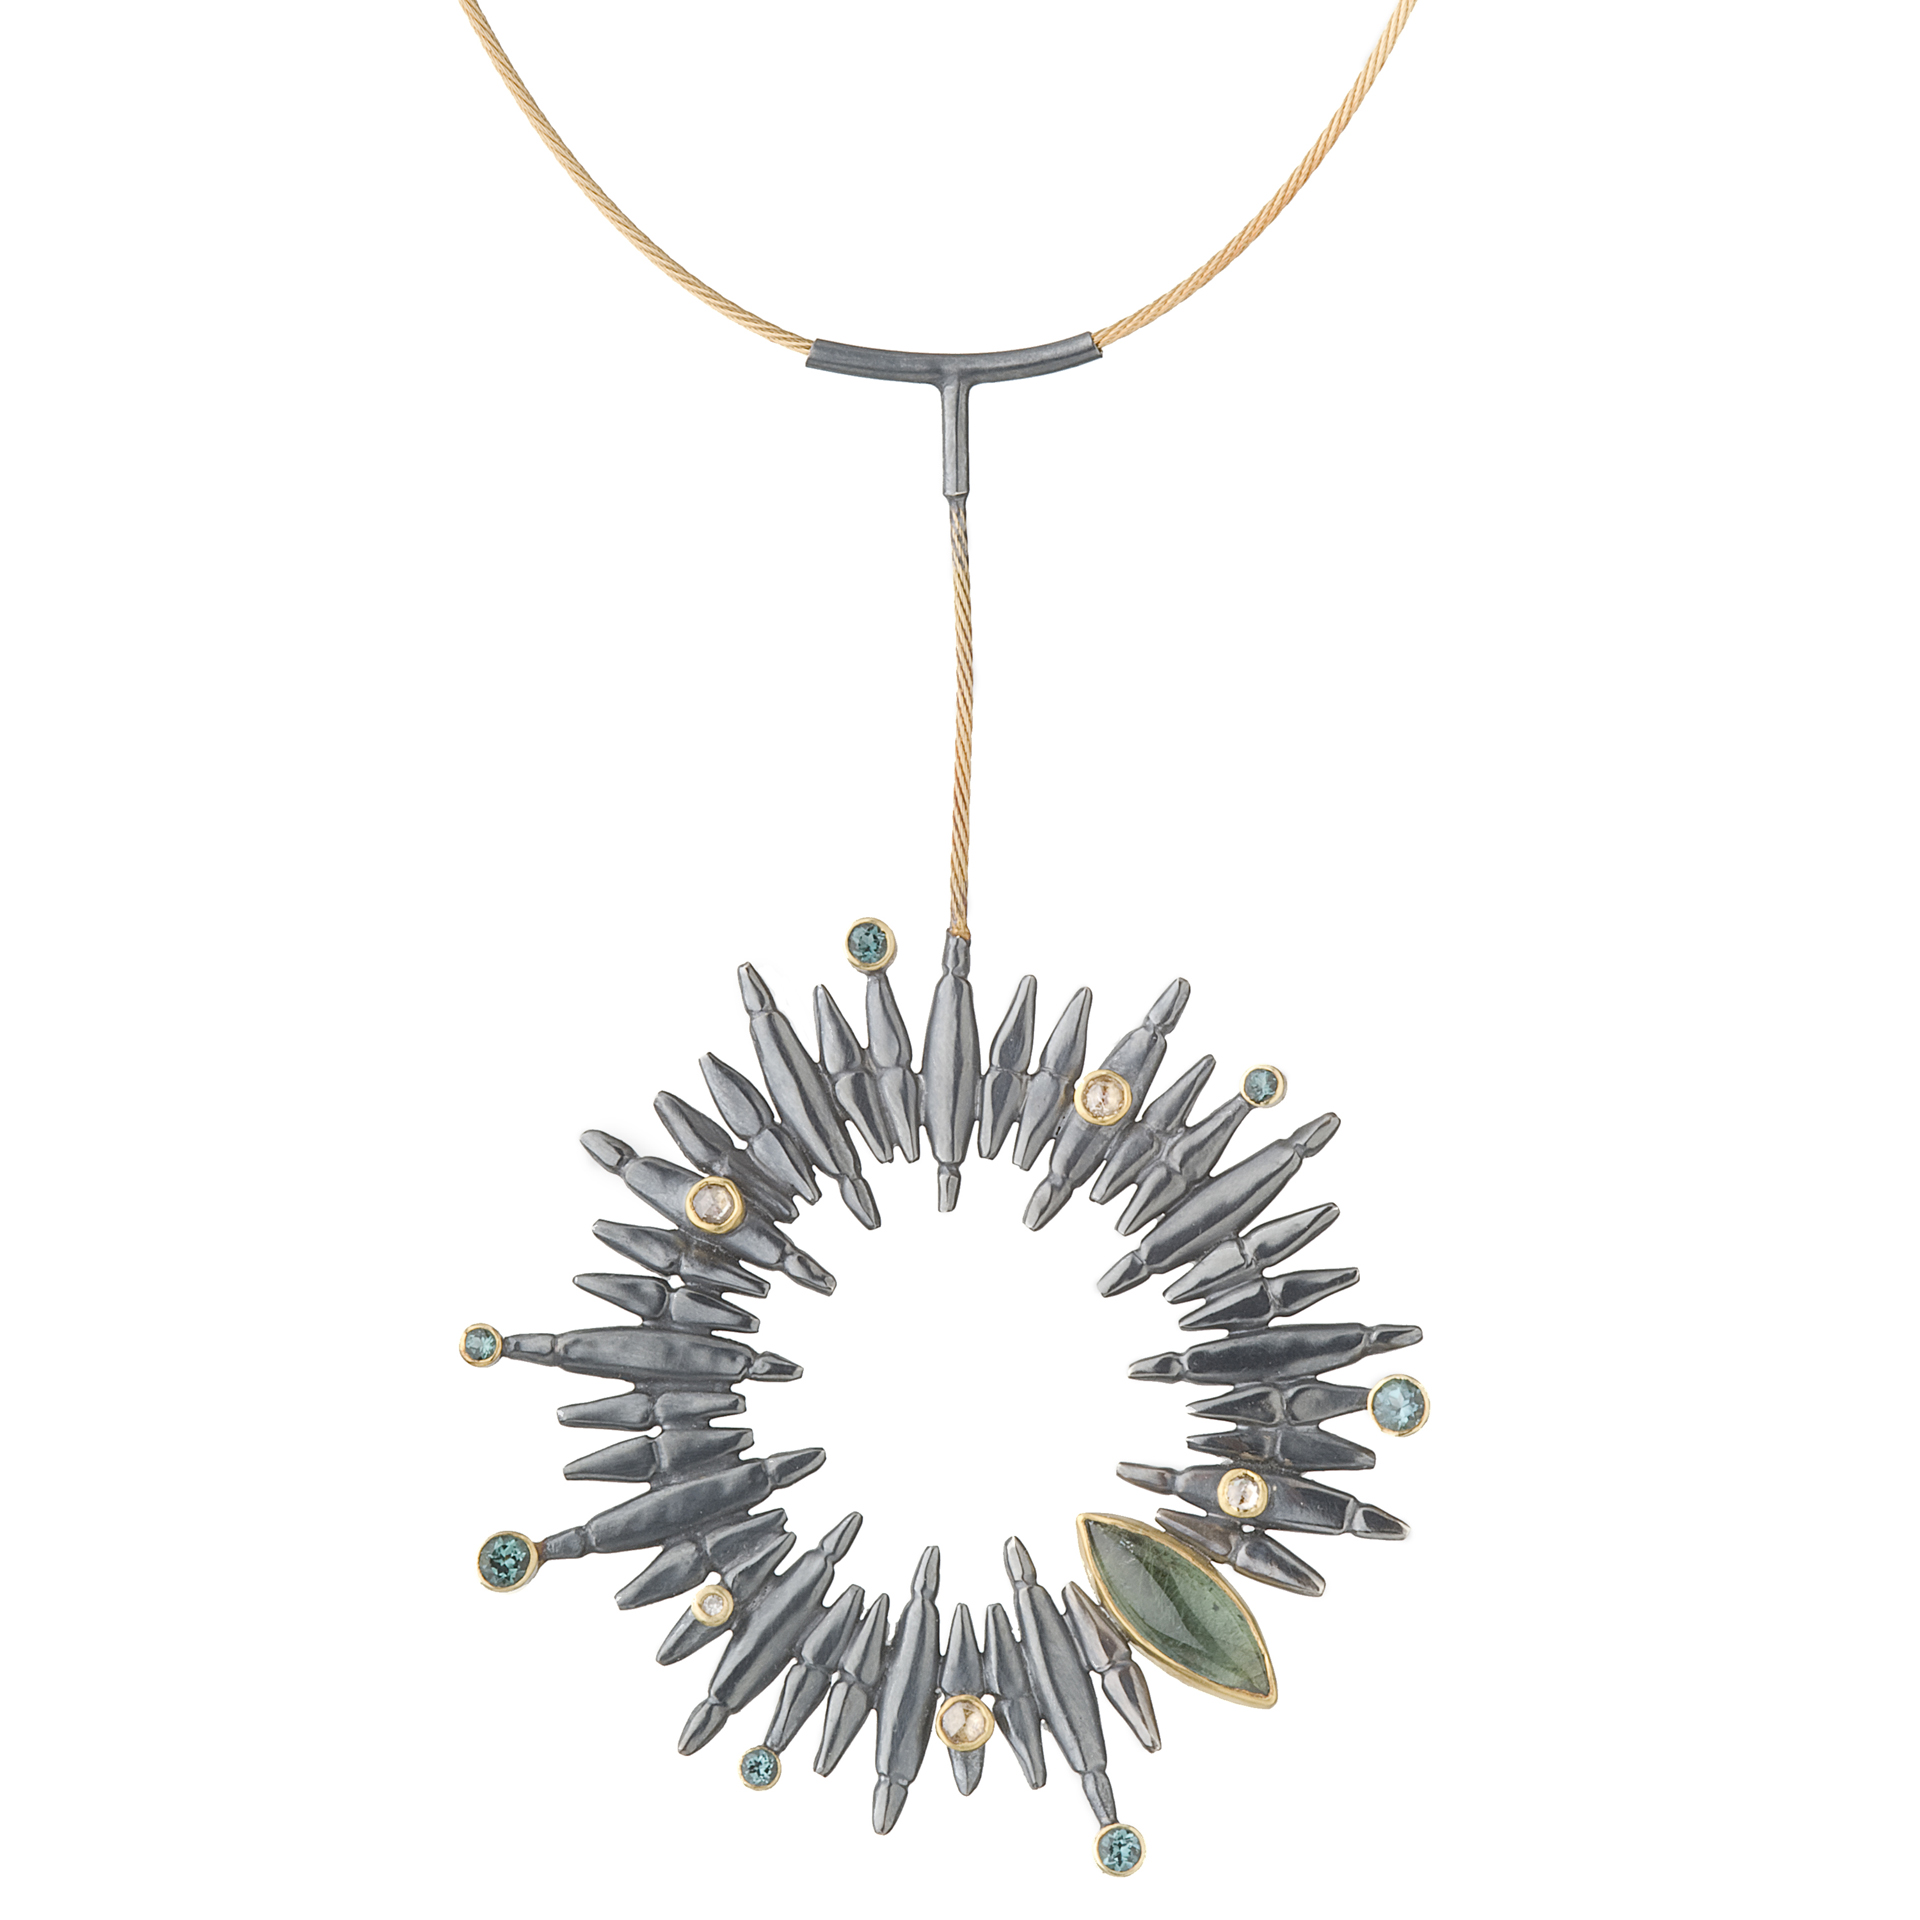 Hanging Garden Necklace